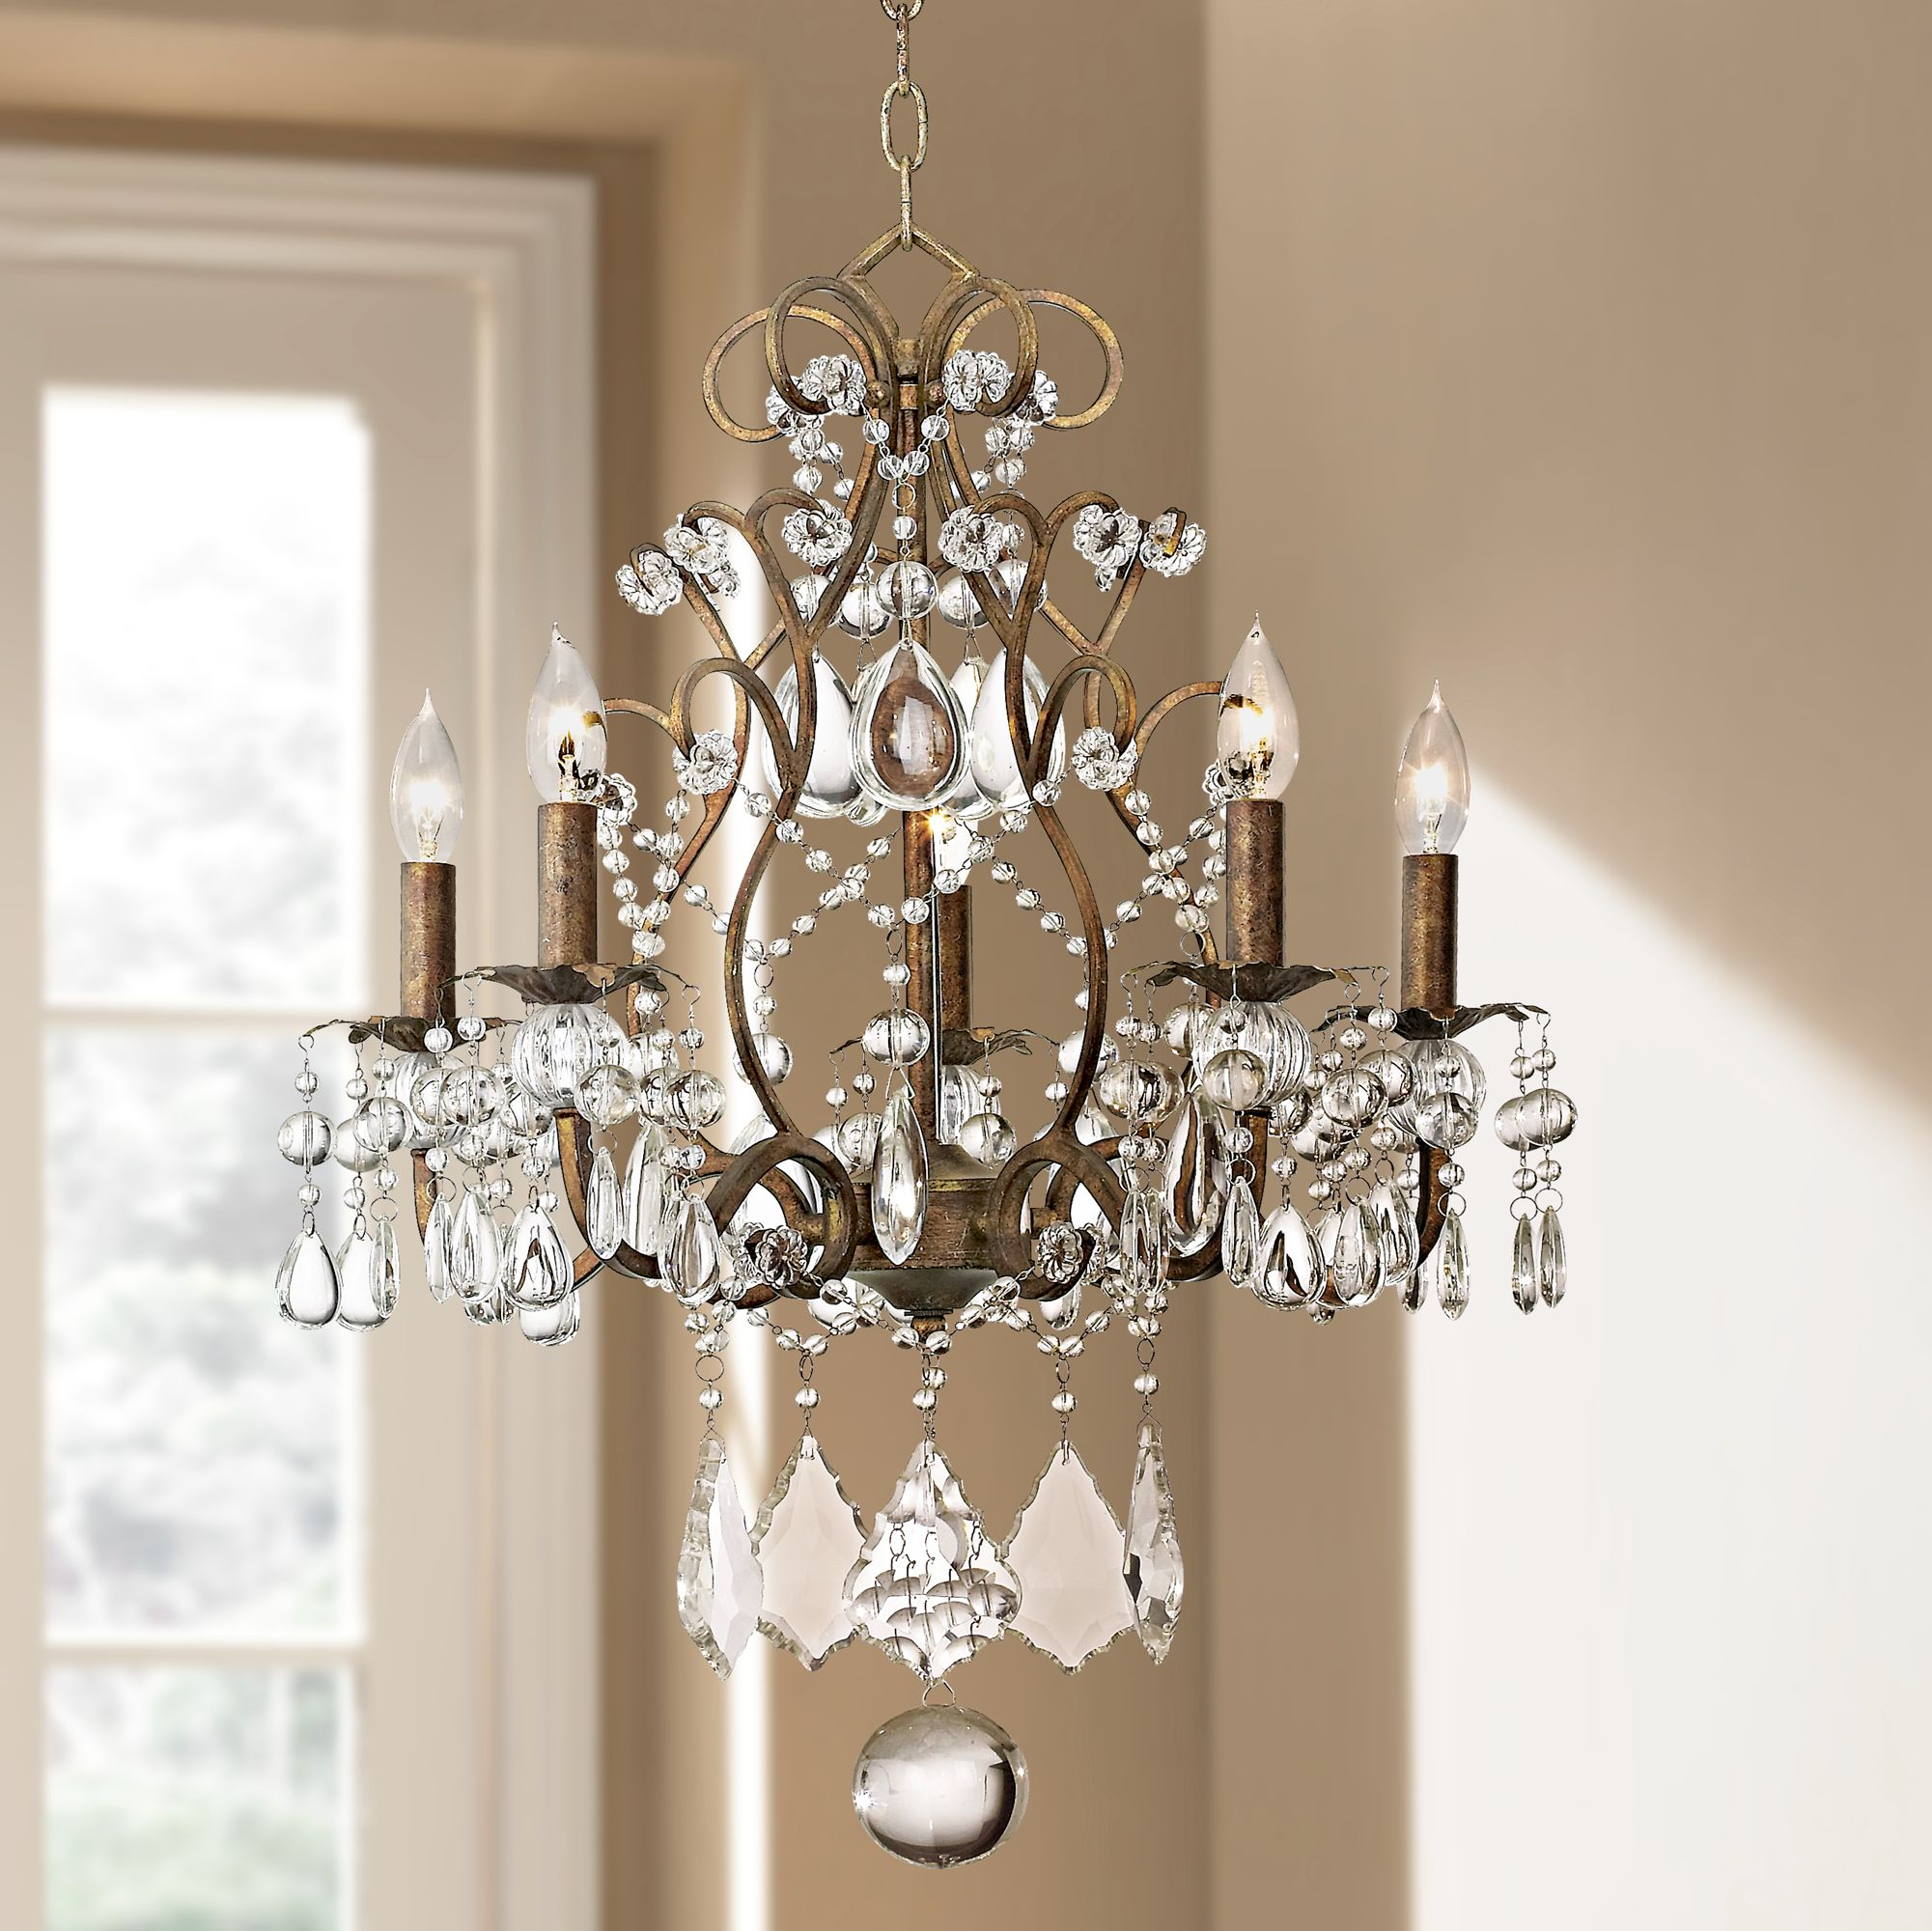 mid corinne of related fixtures chandeliers kitchen tags chandelier lighting best modern exciting entryway beaded century rustic foyer light wood new post